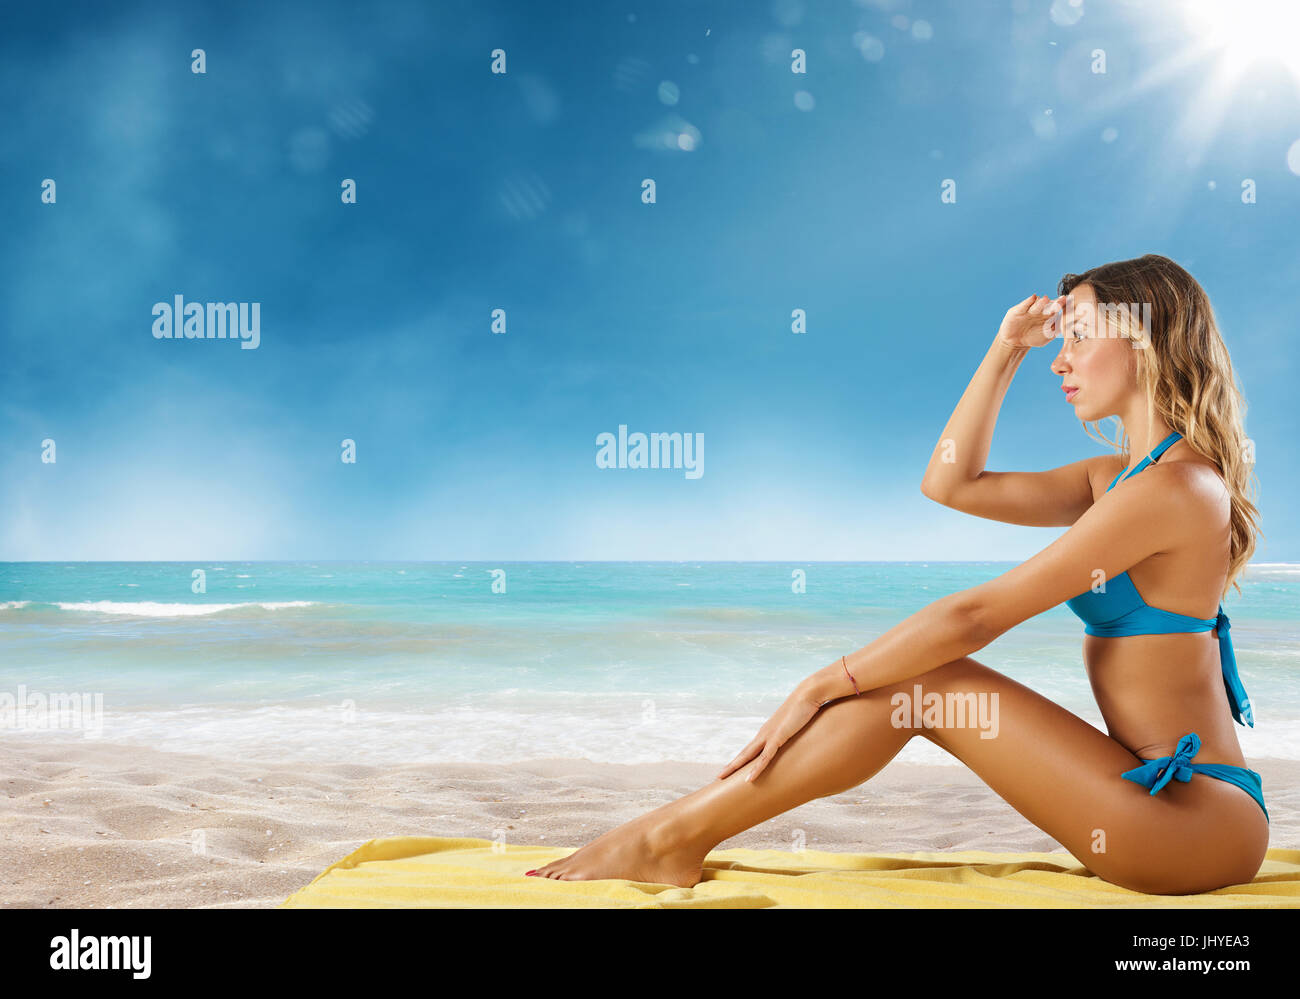 Girl in bikini sits on a beach looking for new travel destination. - Stock Image